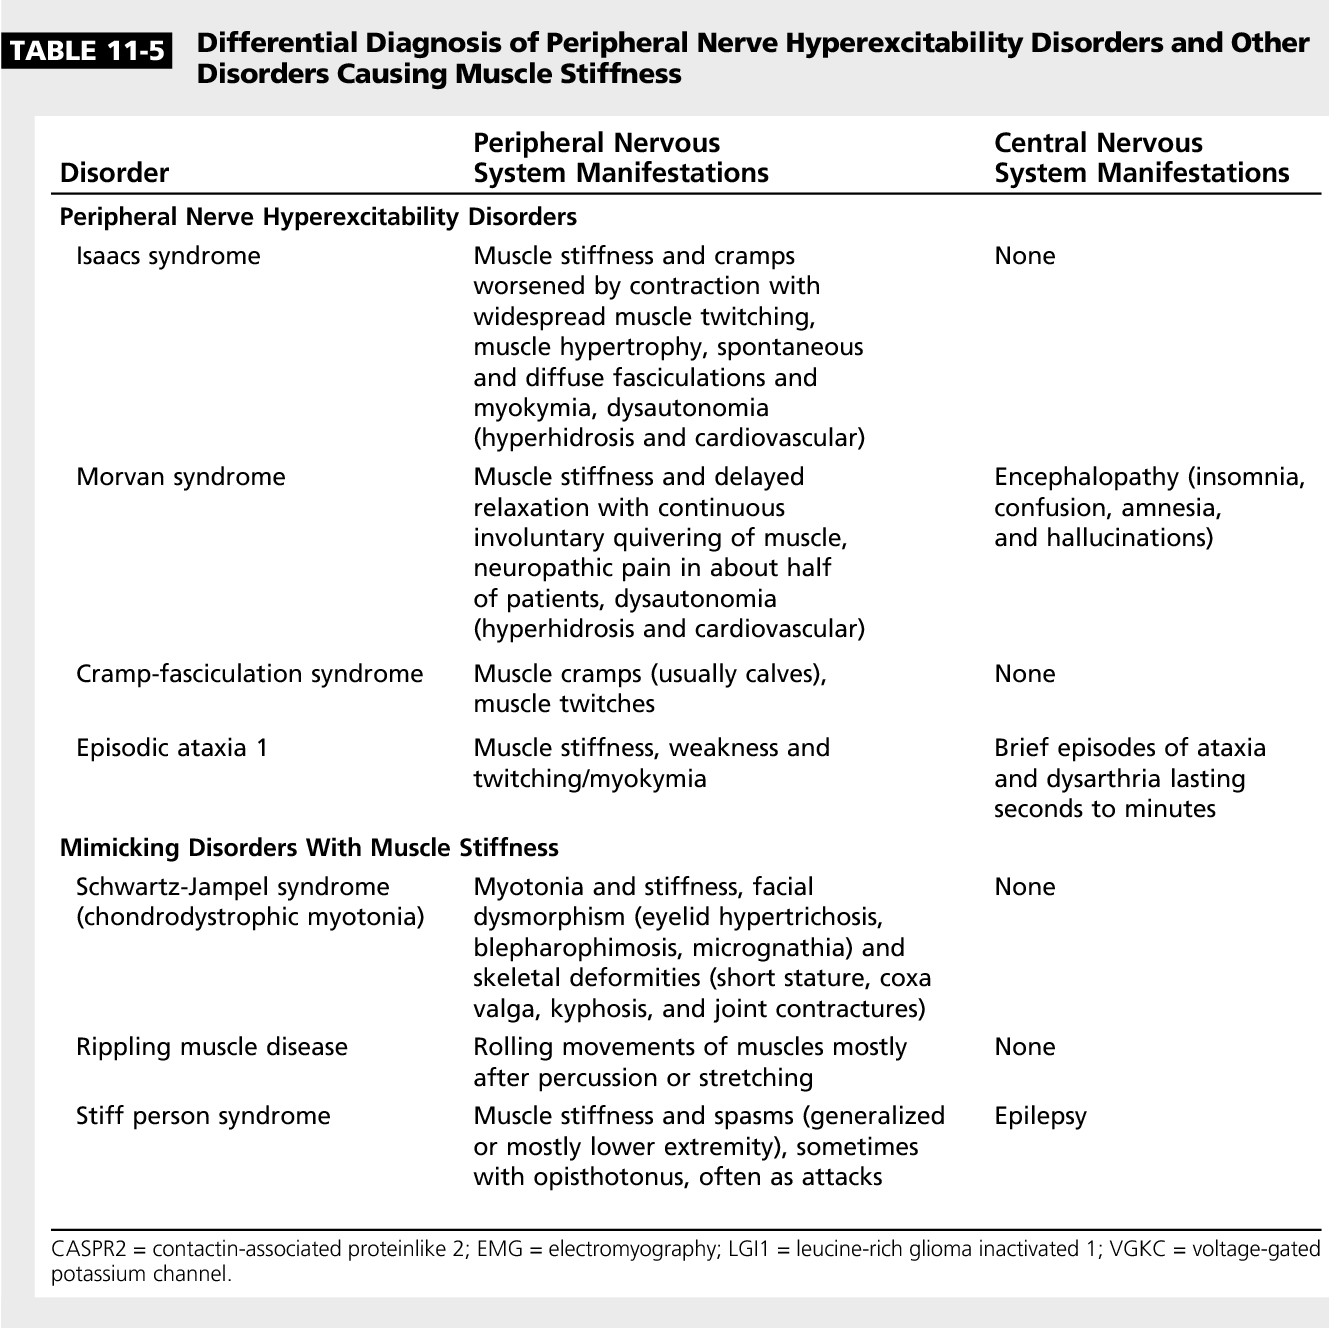 Table 11-5 from Peripheral Nerve Hyperexcitability Syndromes